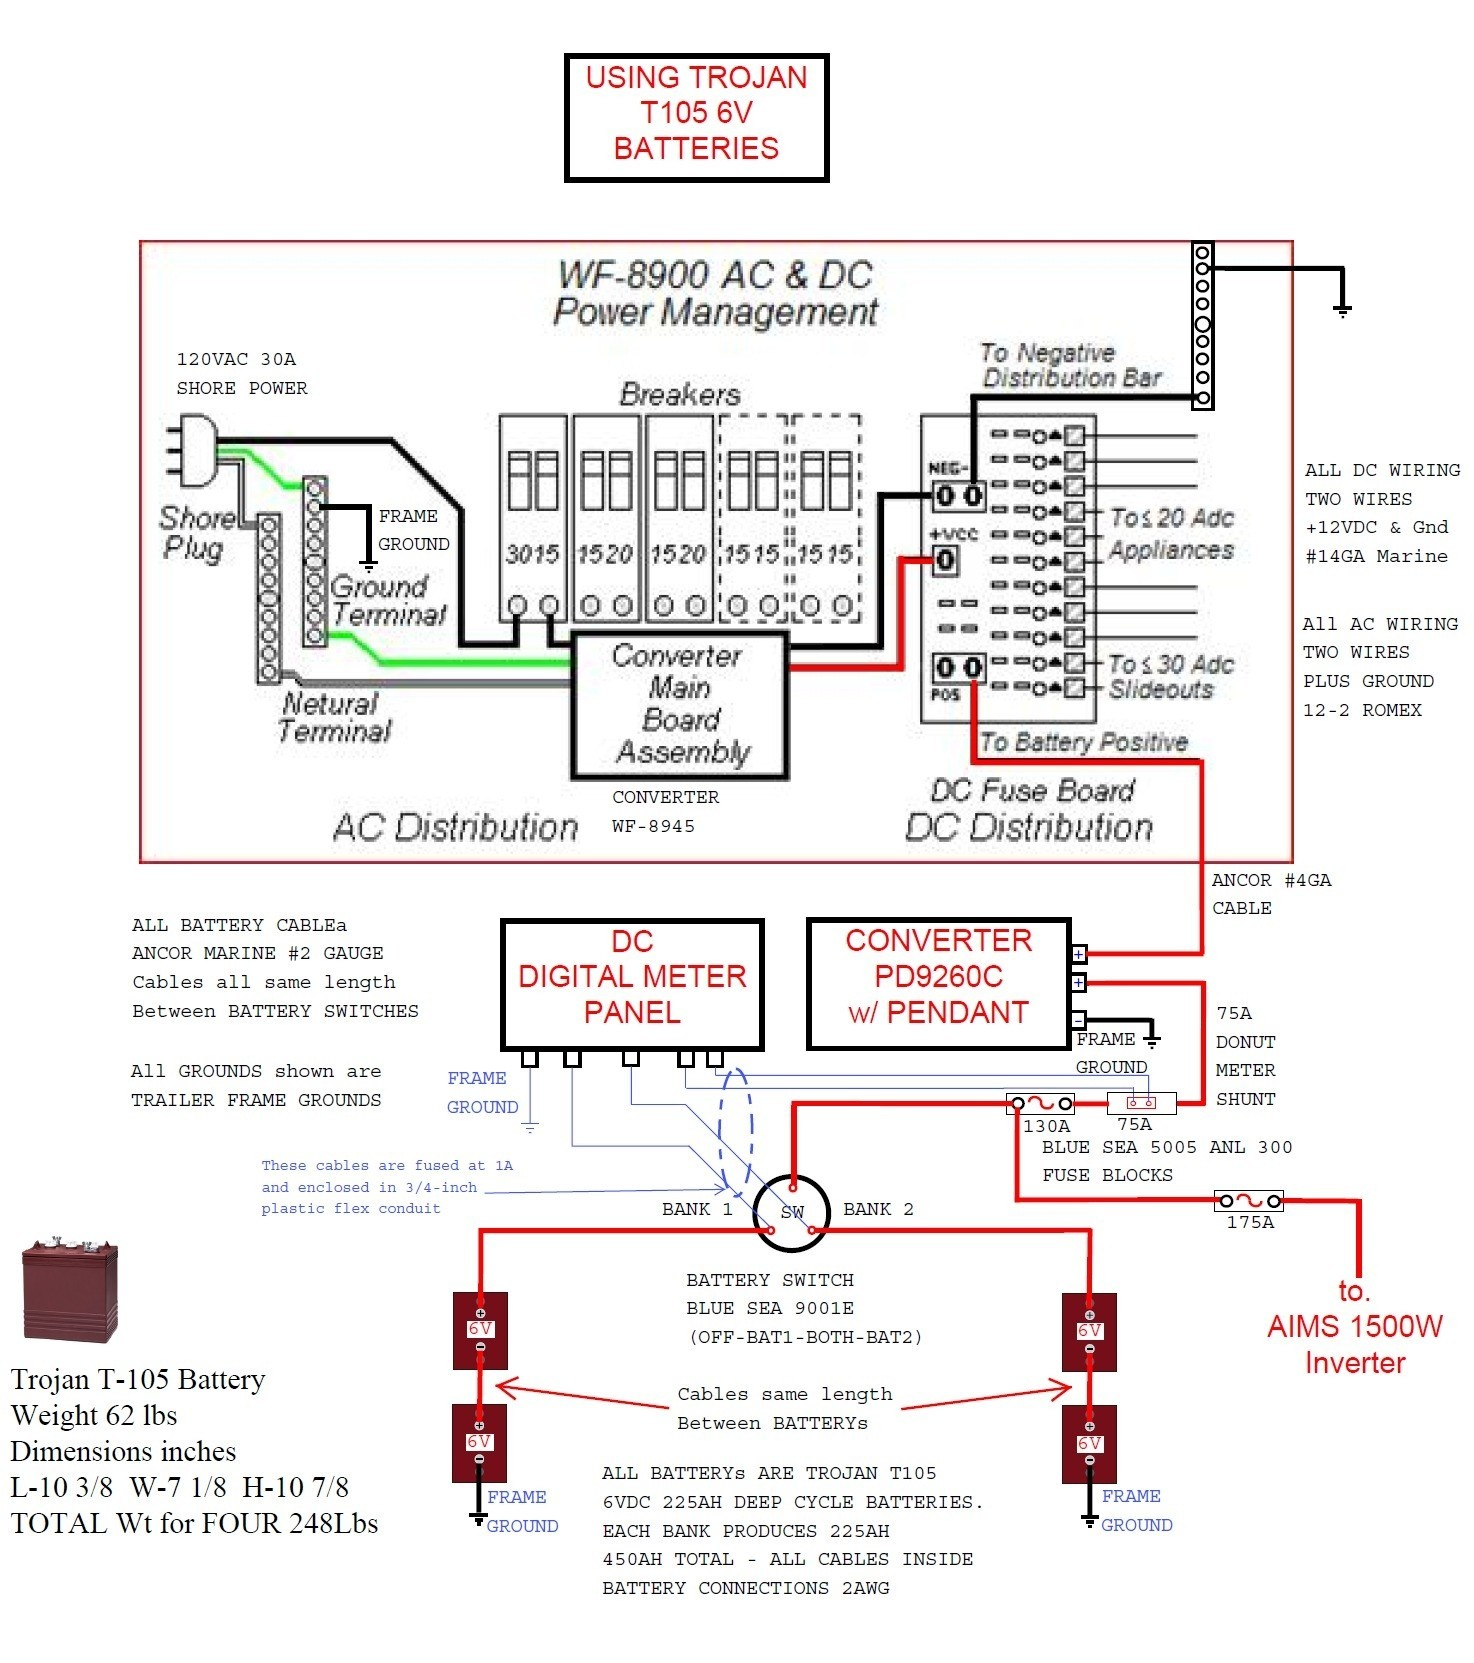 1985 coleman sequoium pop up camper wiring diagram sequoia wiring 2006 coleman pop up camper wiring diagram 1985 coleman sequoia pop up camper wiring diagram